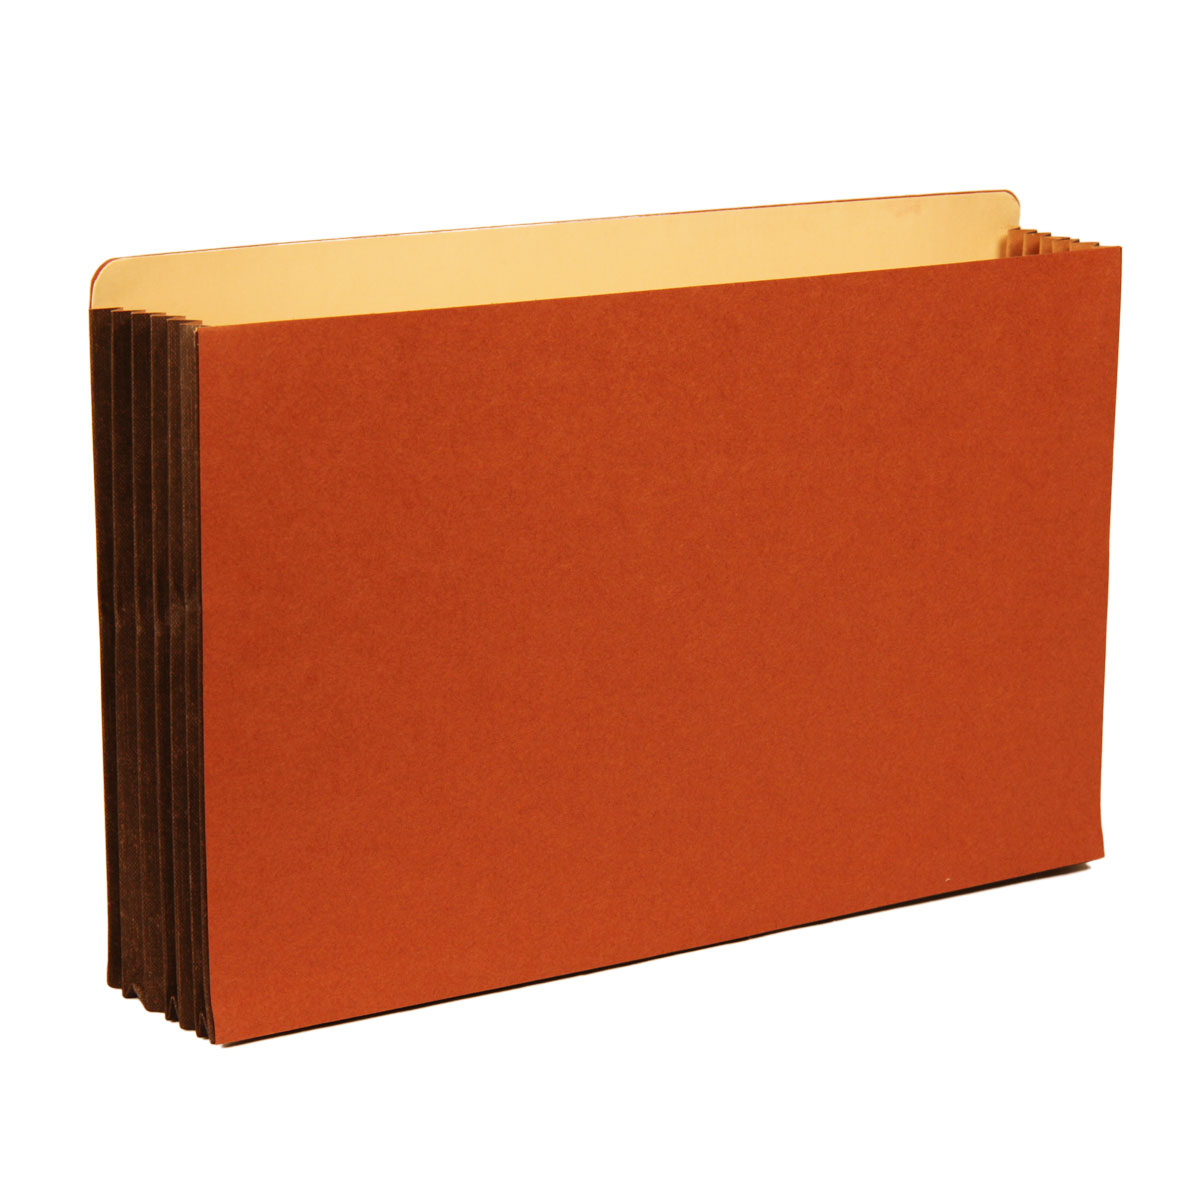 A-74146 - Premium Redrope File Pockets, 5-1/4